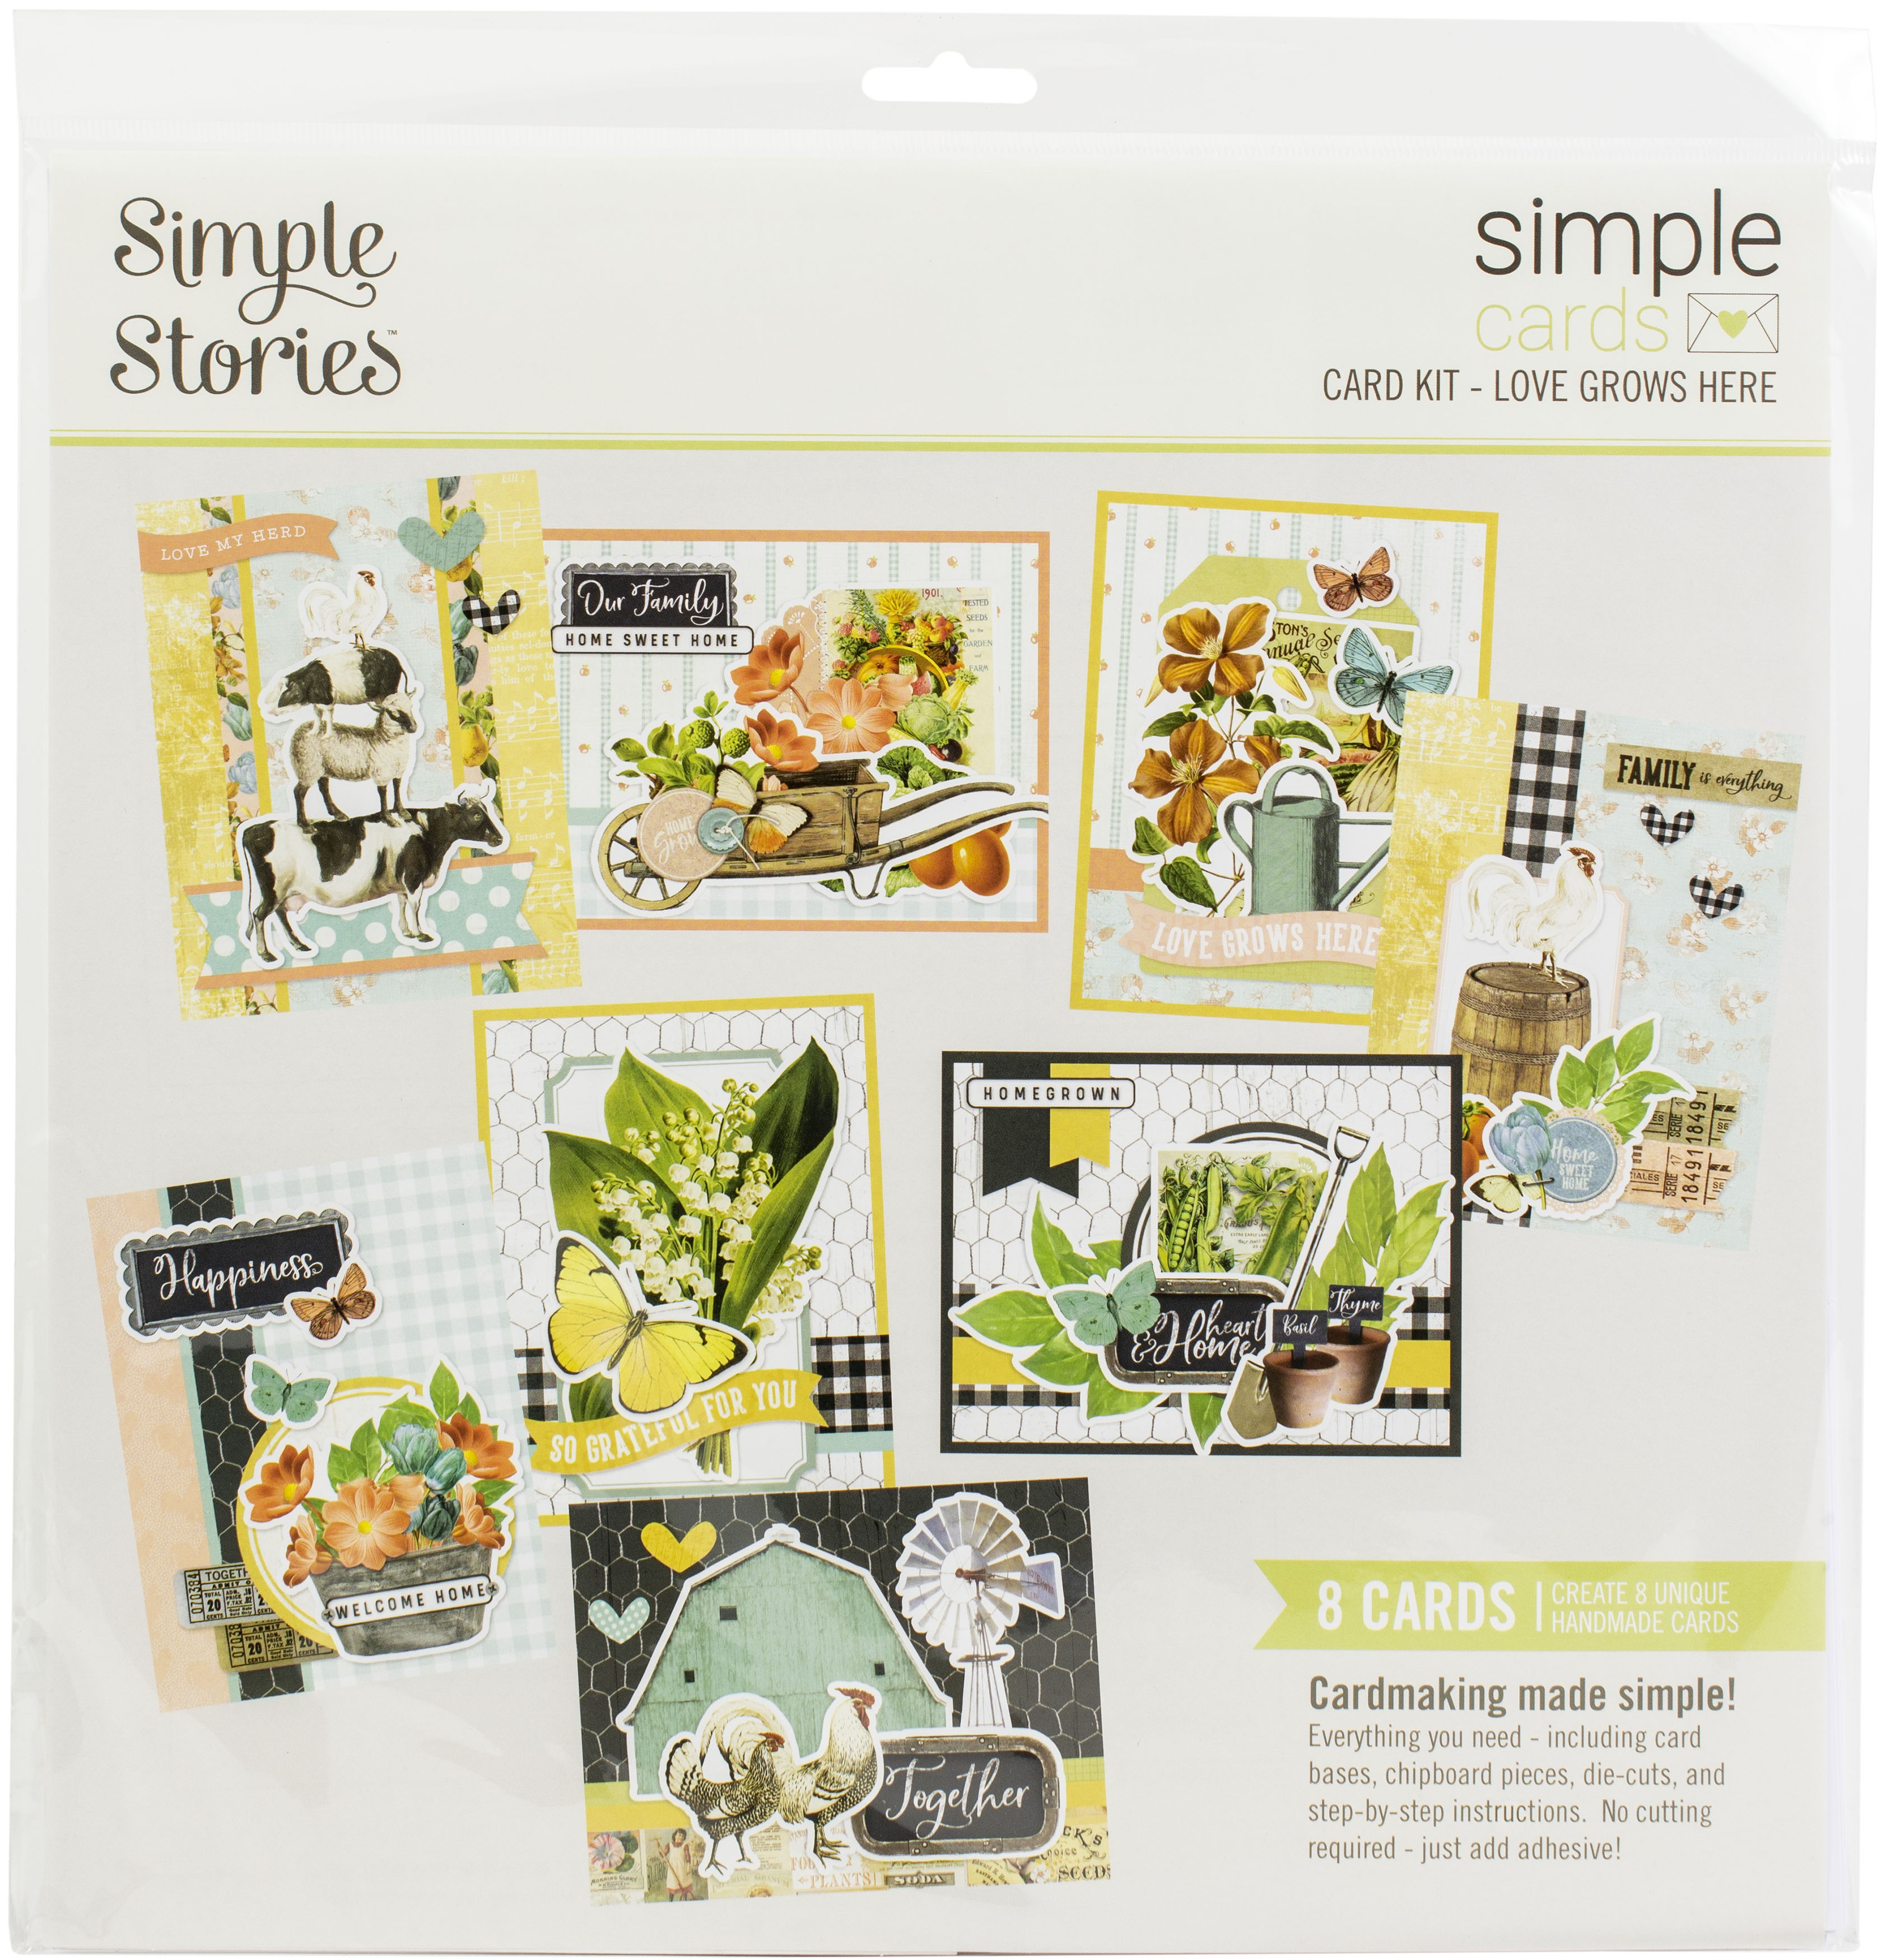 Simple Stories Simple Cards Card Kit-Love Grows Here, Farmhouse Garden